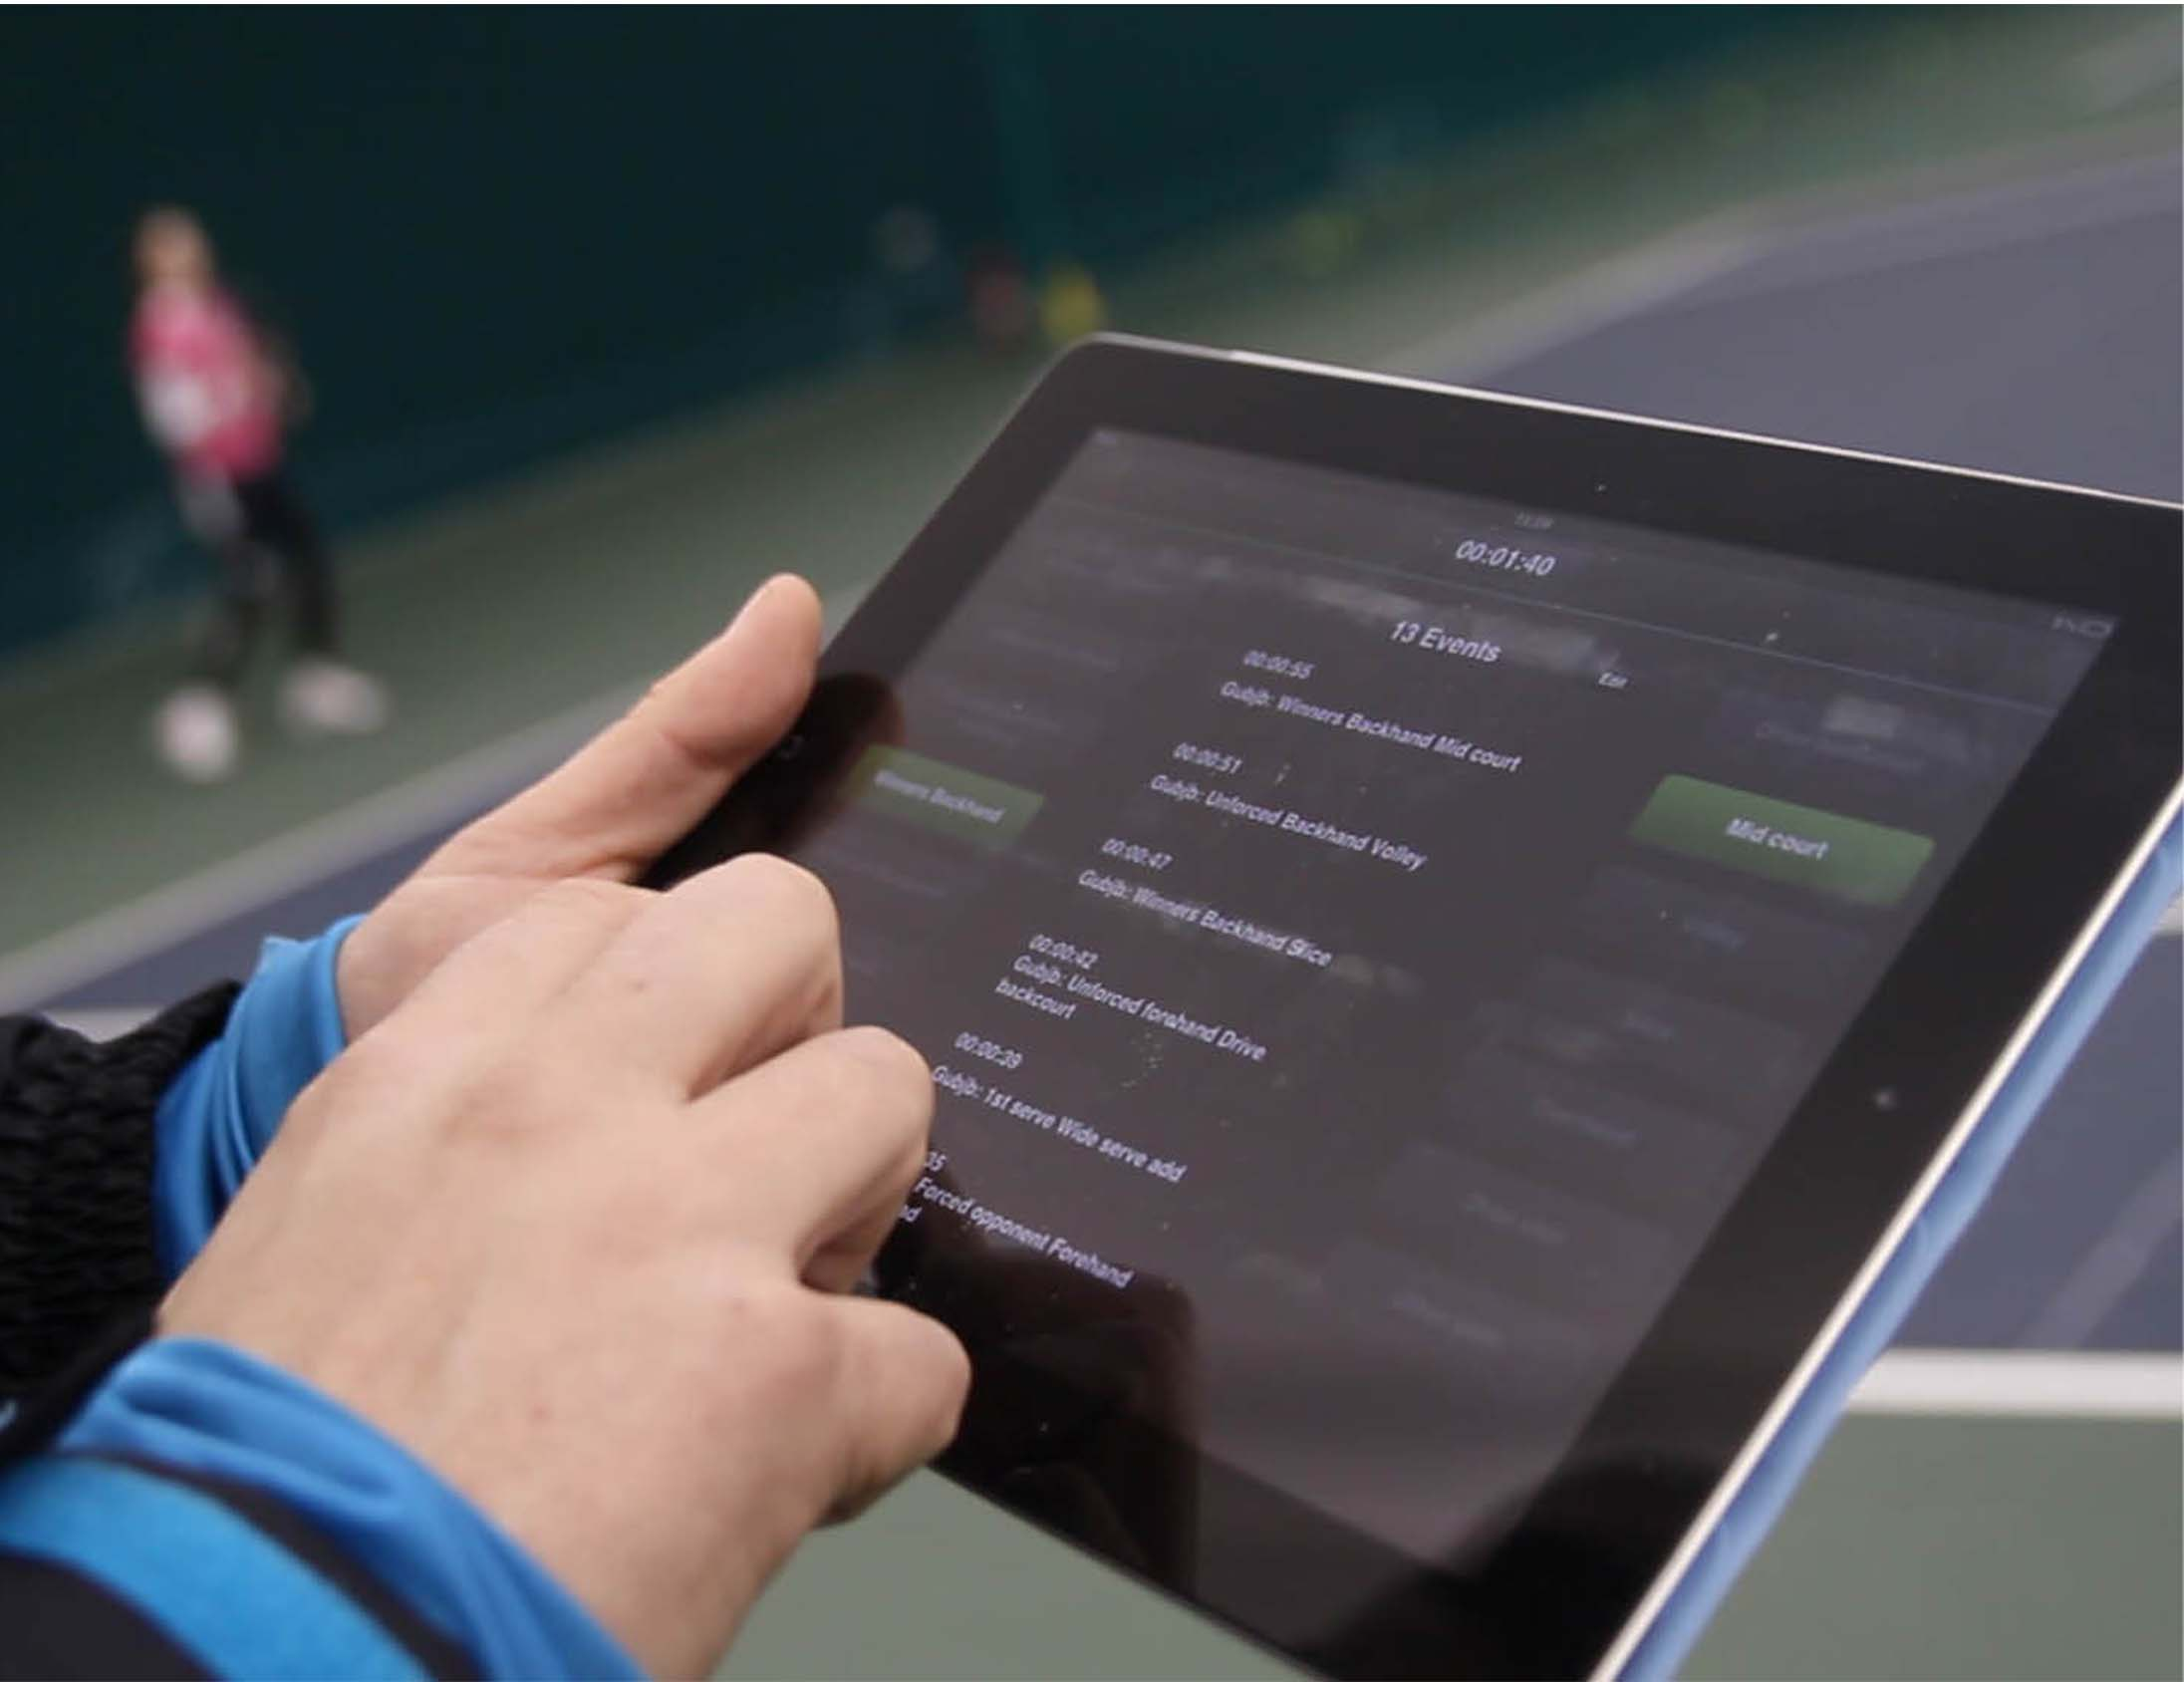 Tennis live stats on Performa Sports iPad app